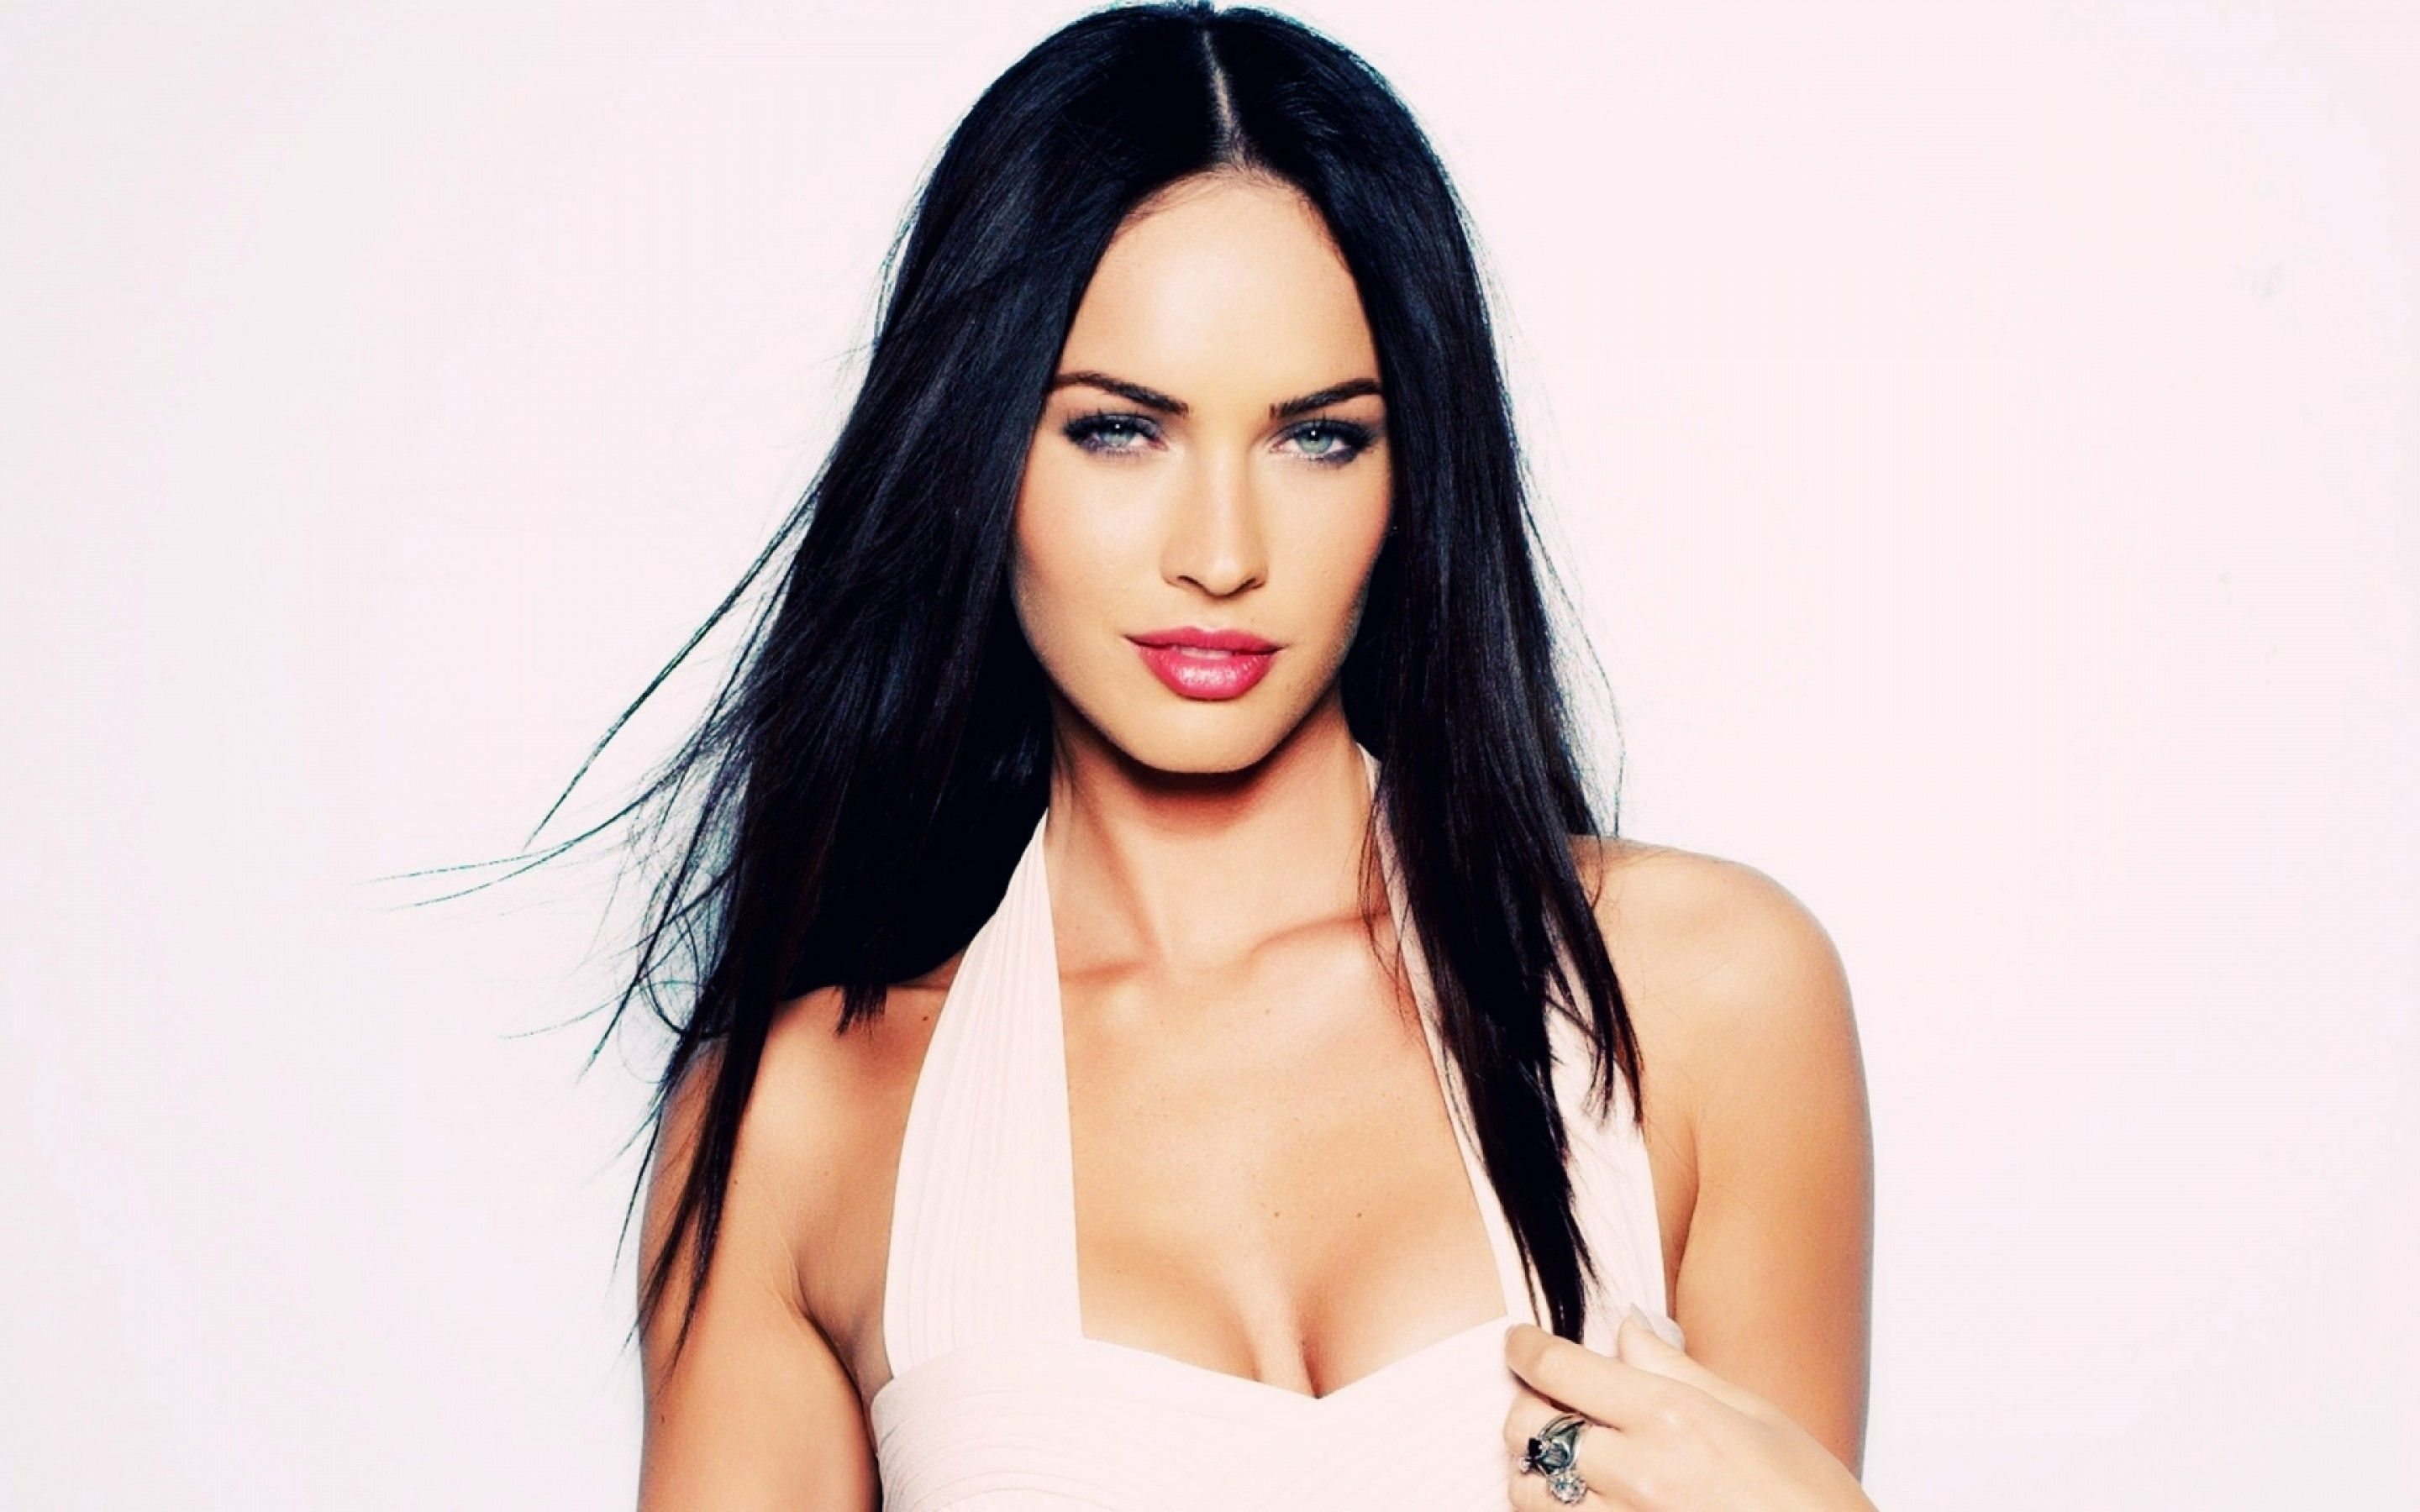 What did actress Megan Fox look like before and after plastics: features and interesting facts 61